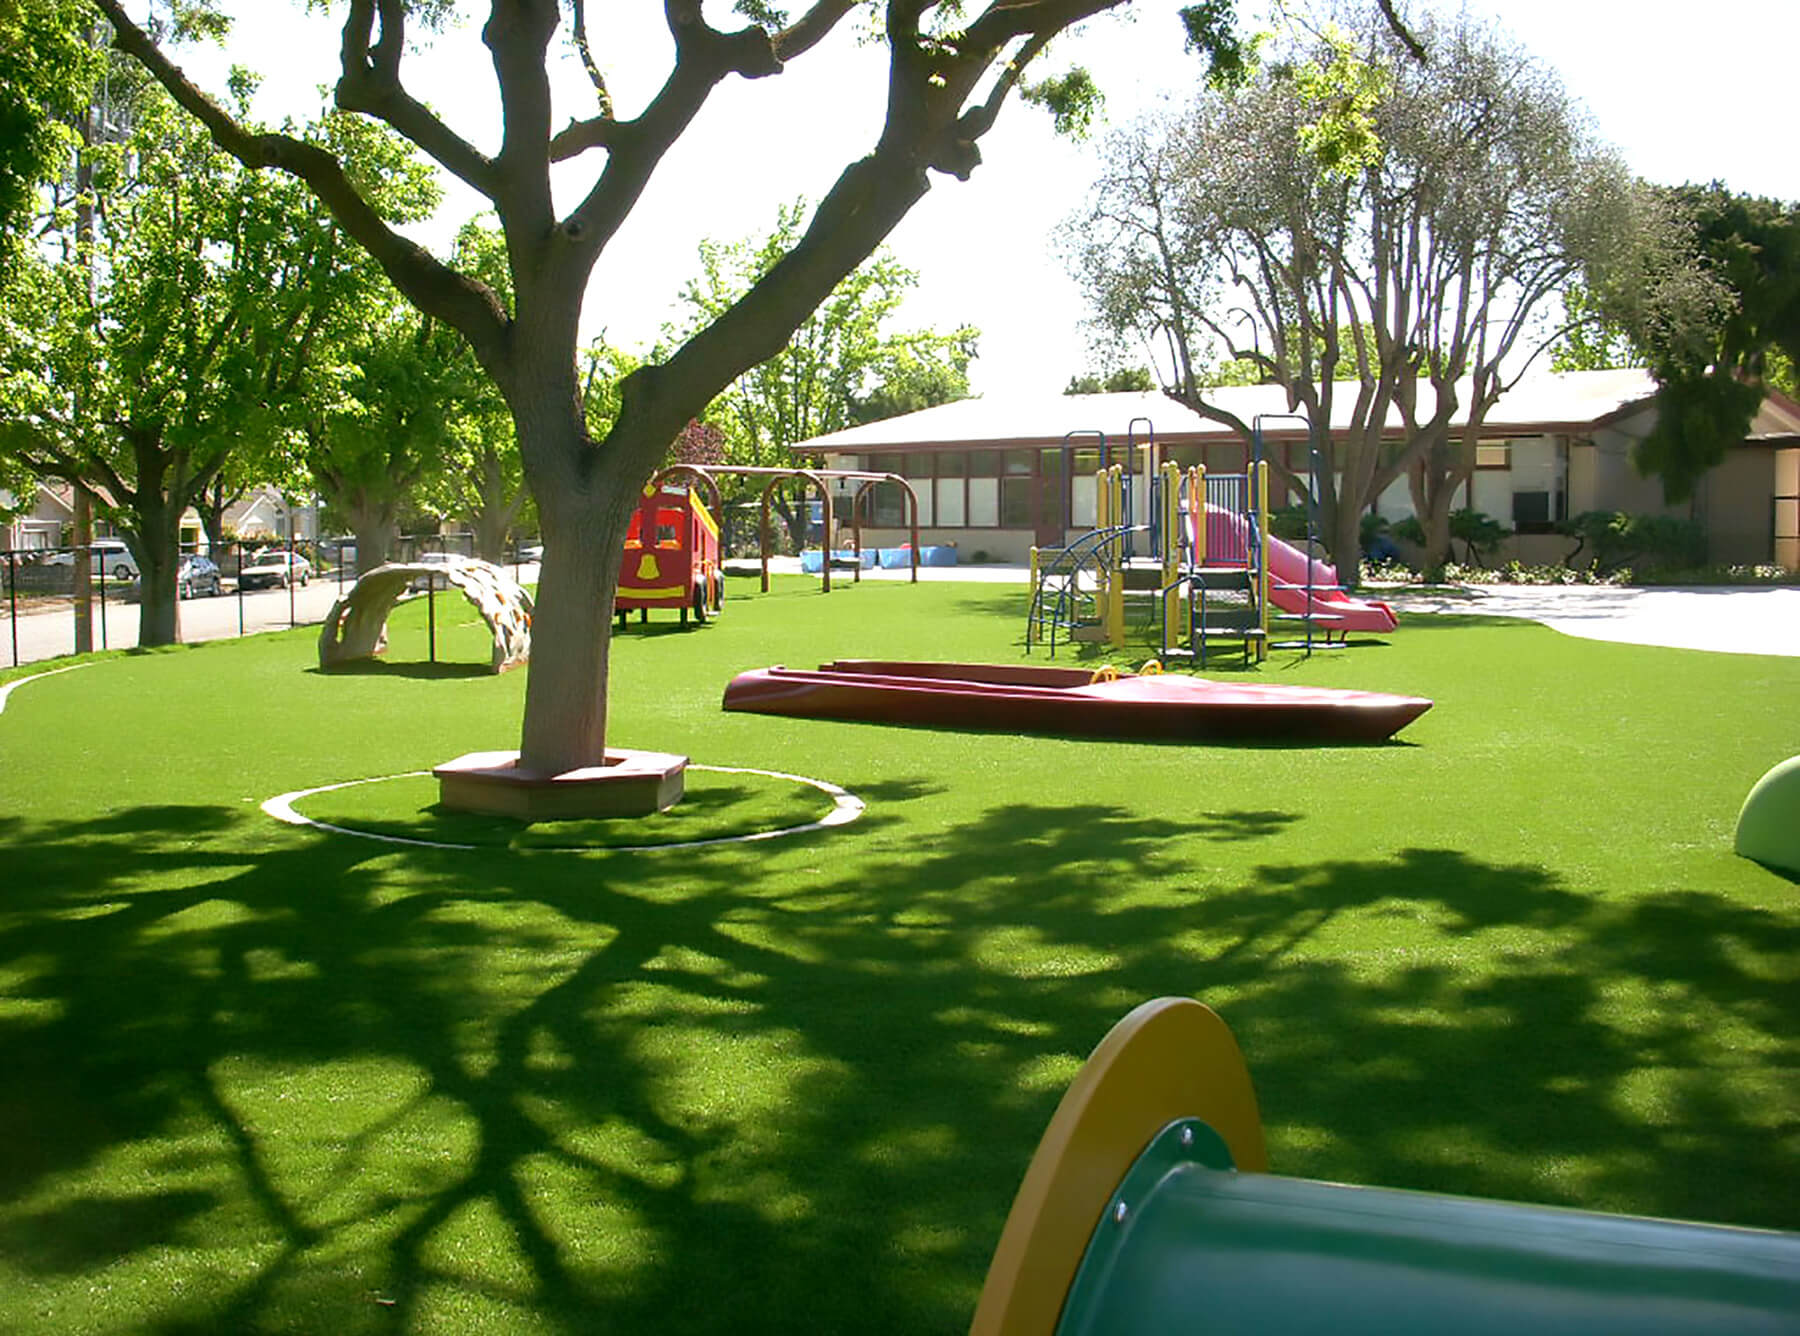 School playground with artificial turf surfacing